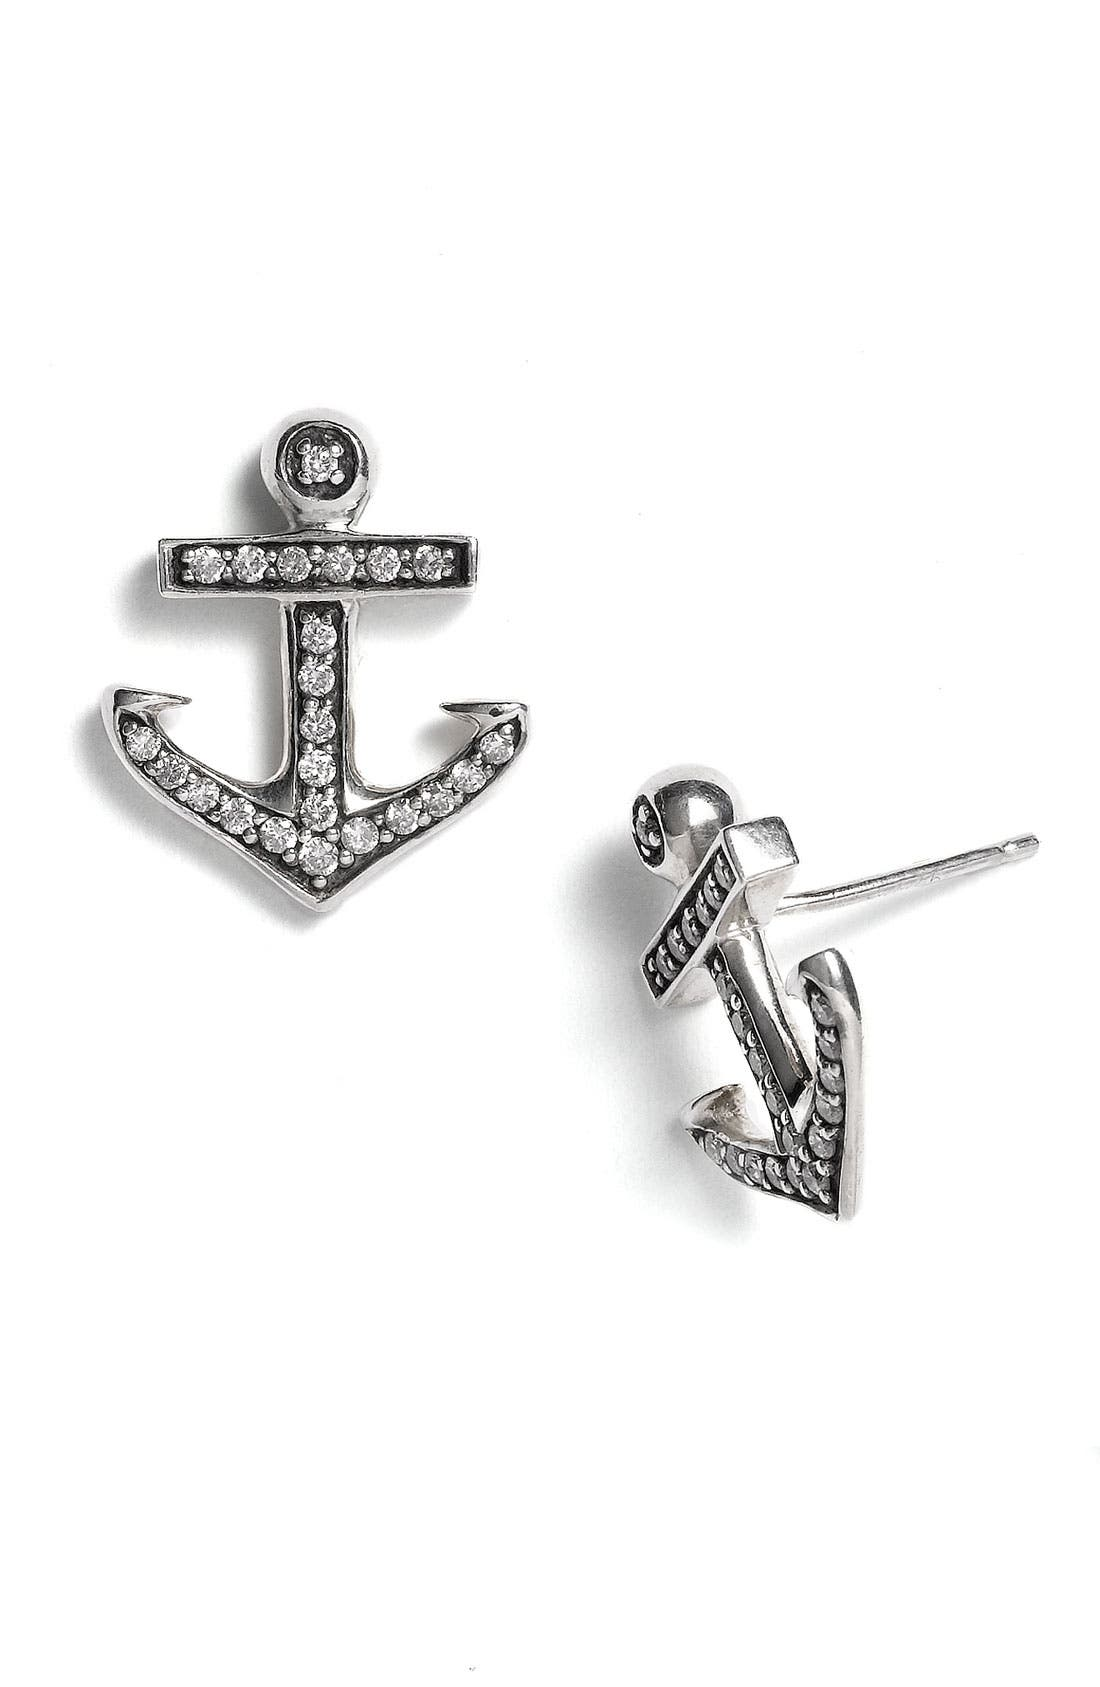 Main Image - Elizabeth and James 'Sea Creatures' Anchor & Sapphire Earrings